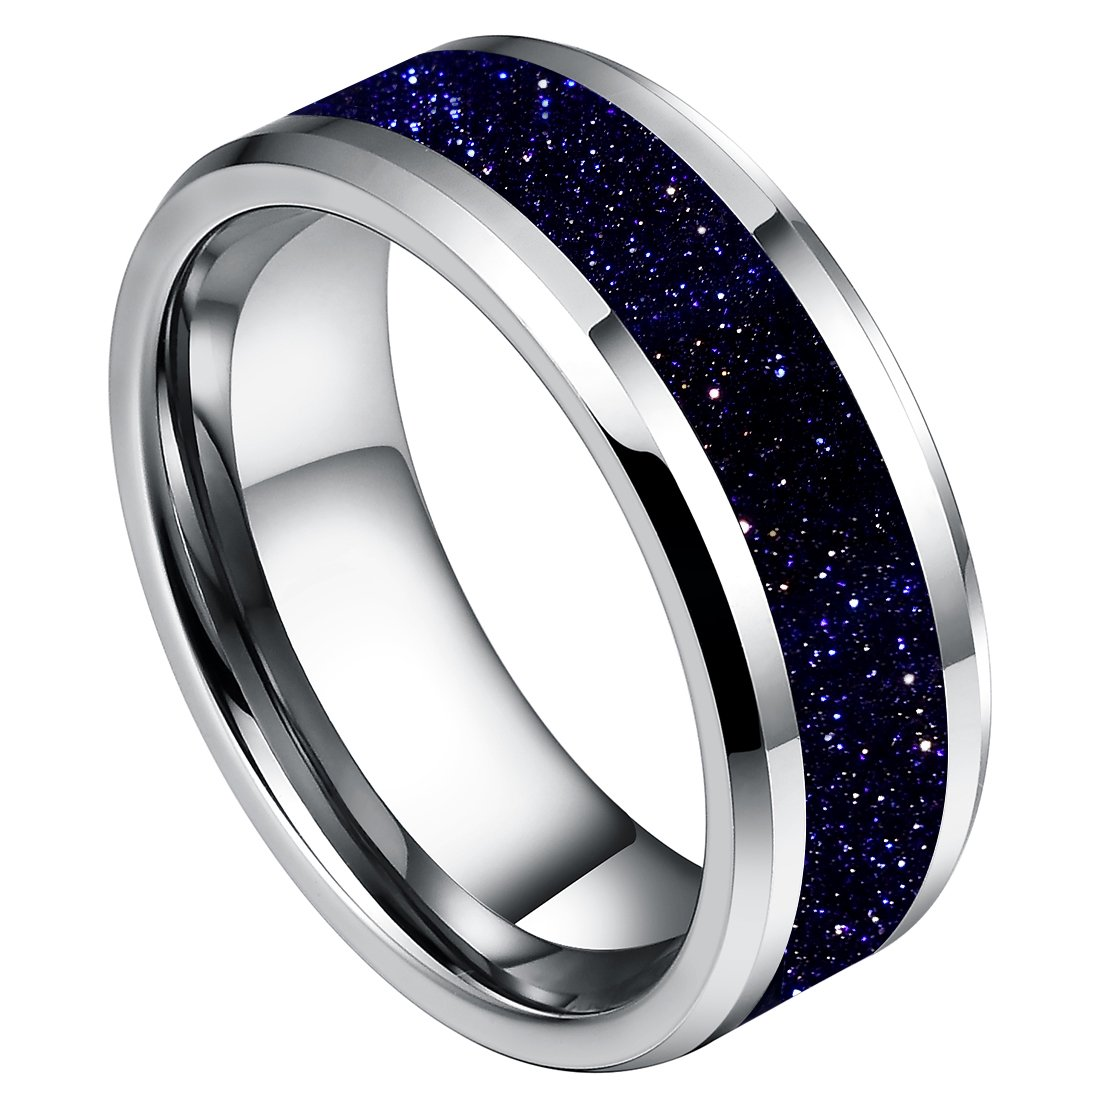 DOUX 8mm Mens White Tungsten Carbide Ring Blue Sandstone Inlay Wedding Band Comfort Fit High Polished(8.5)